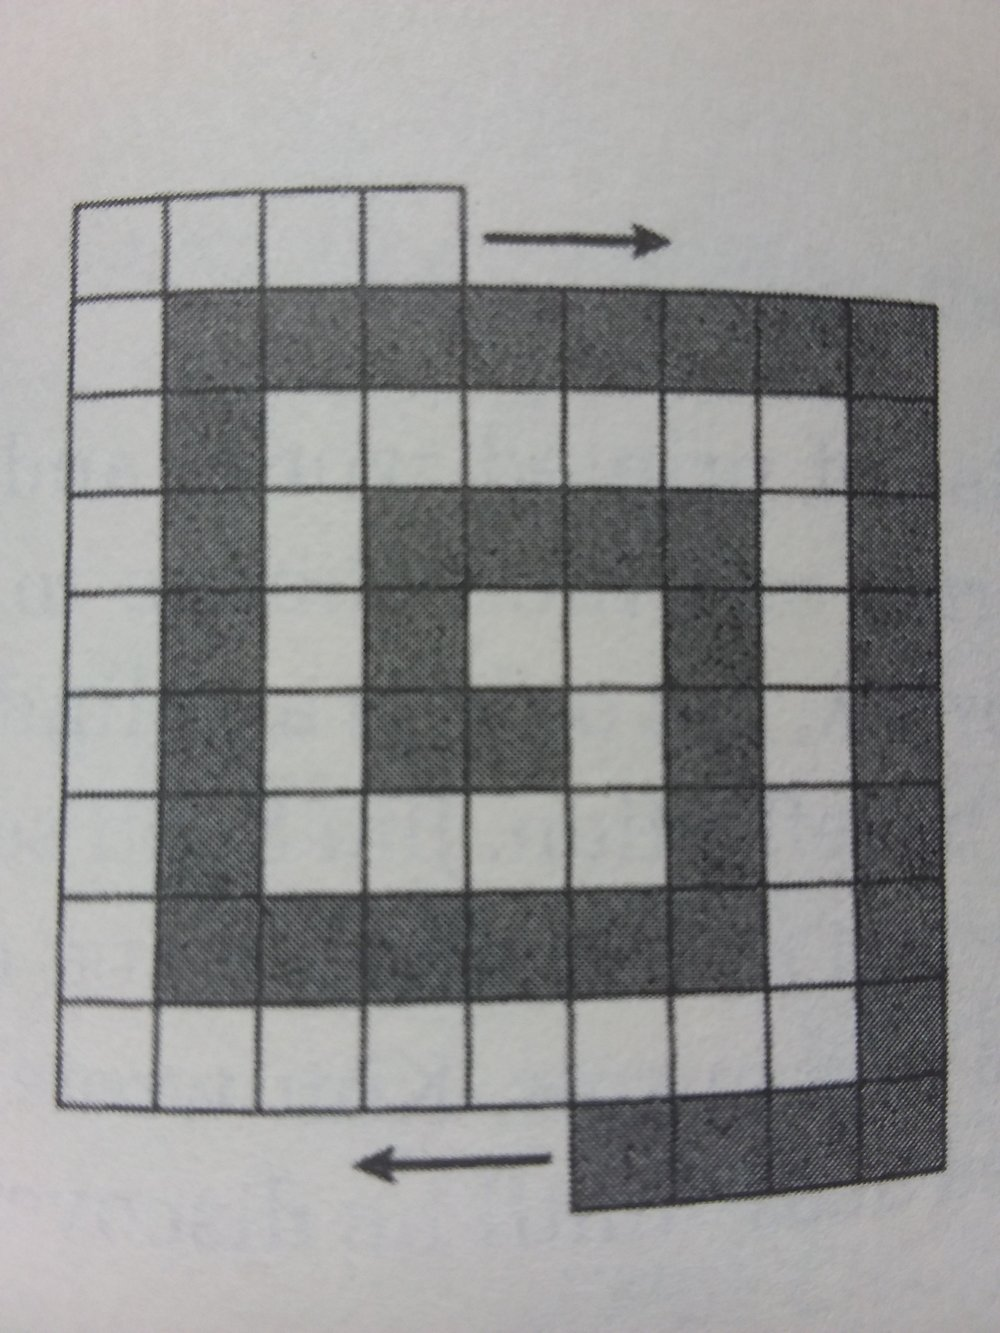 Picture from The Colossal Book of mathematics by Martin Gardner